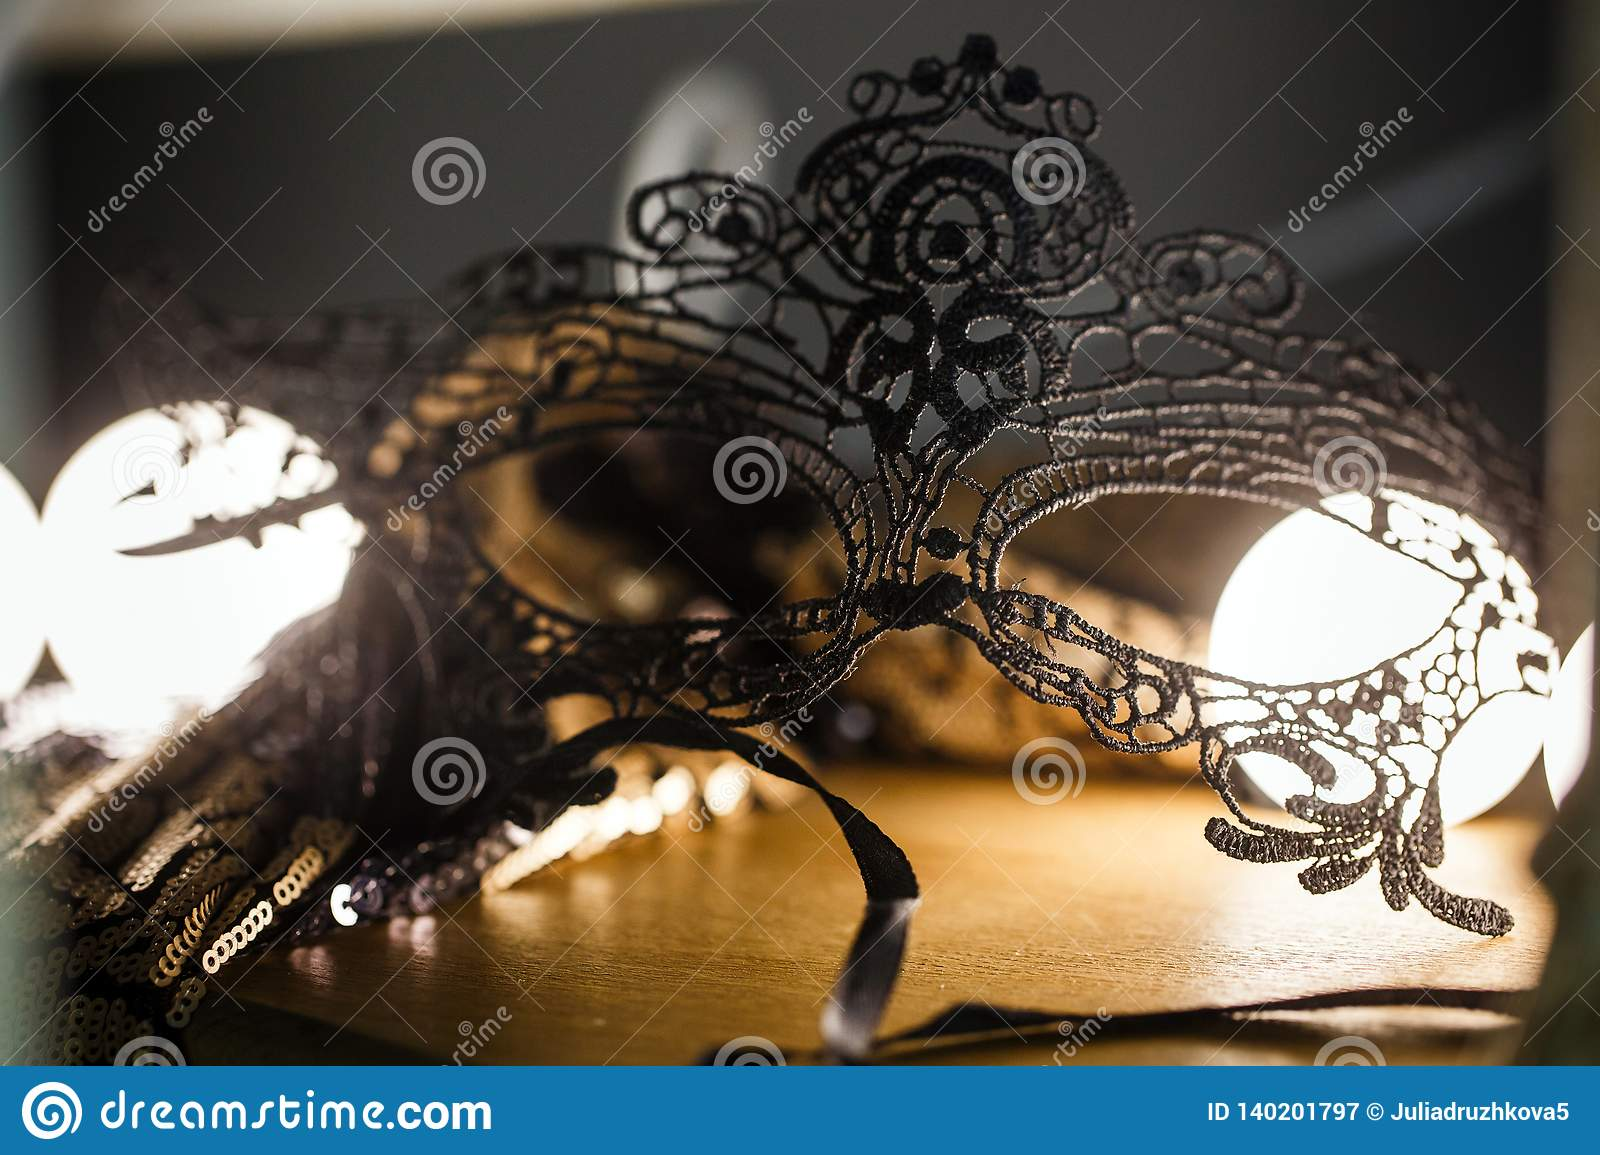 Black lace mask is on the table in a romantic atmosphere. Backlight, close-up